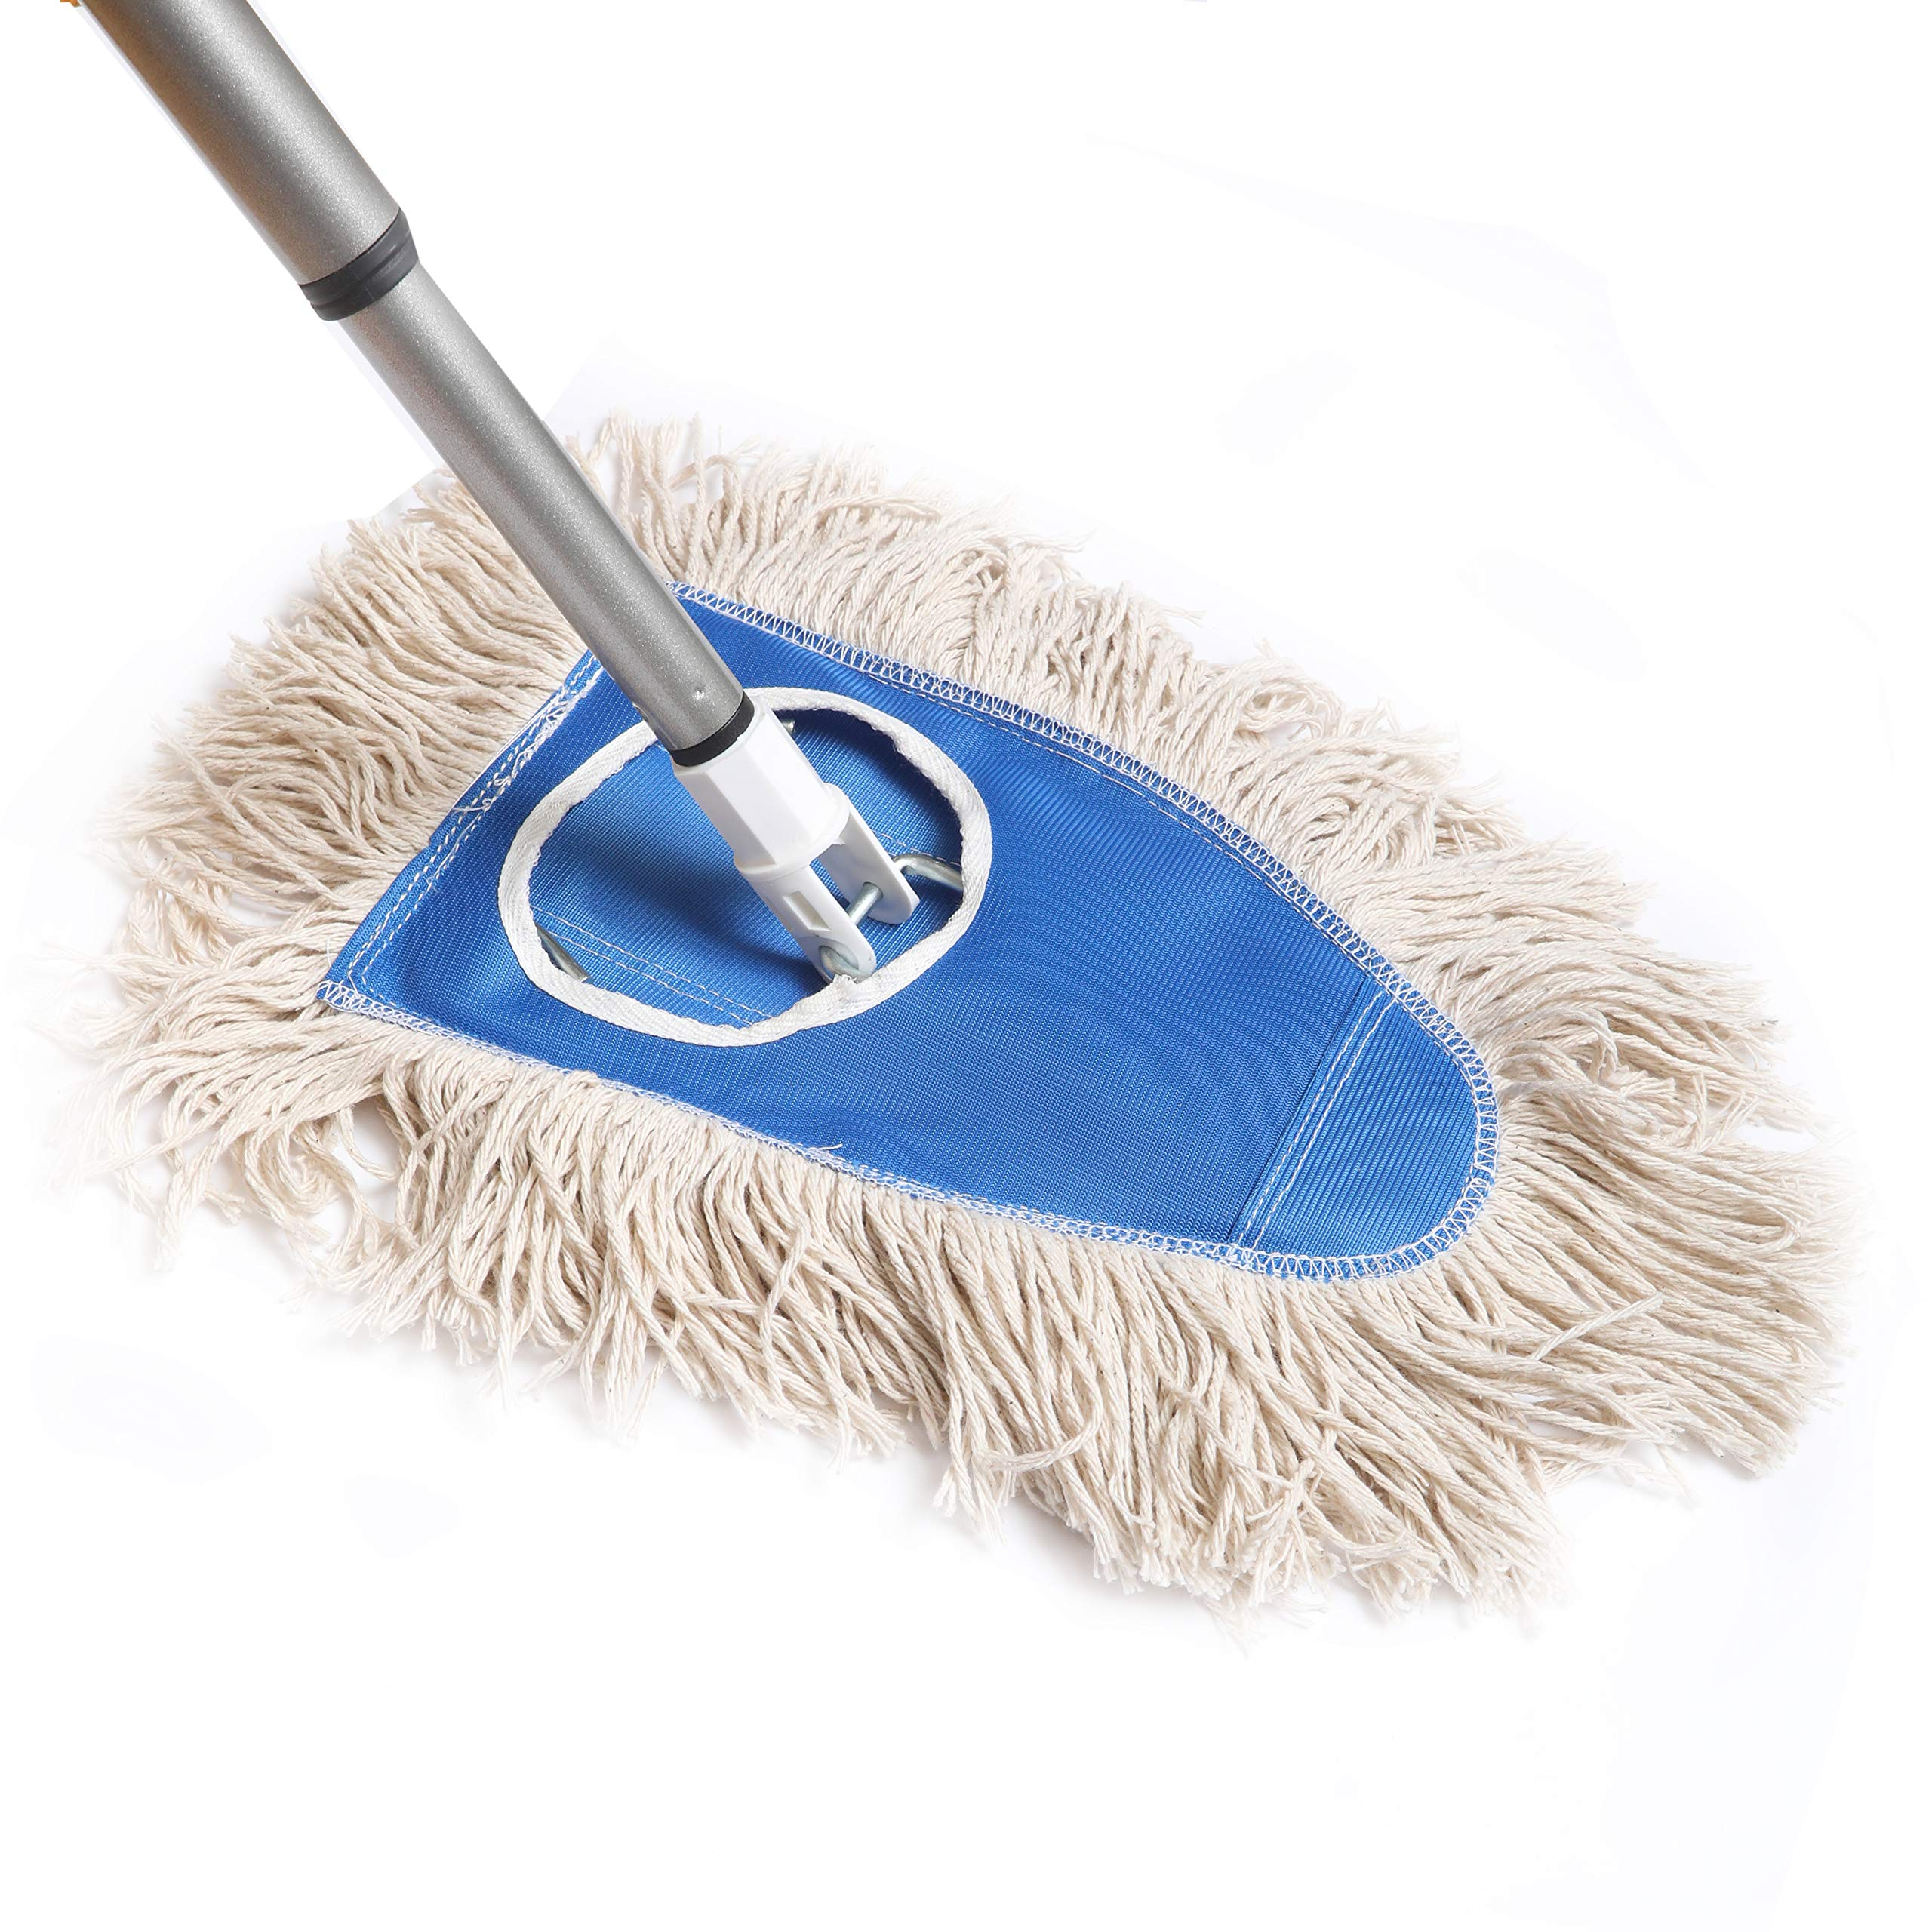 Fuller Brush Dry Mop - Commercial Floor Dusting & Mopping Cleaner w/ Extension Handle & Washable Head For Drying & Dusting Kitchen & Bathroom Floors by Fuller Brush